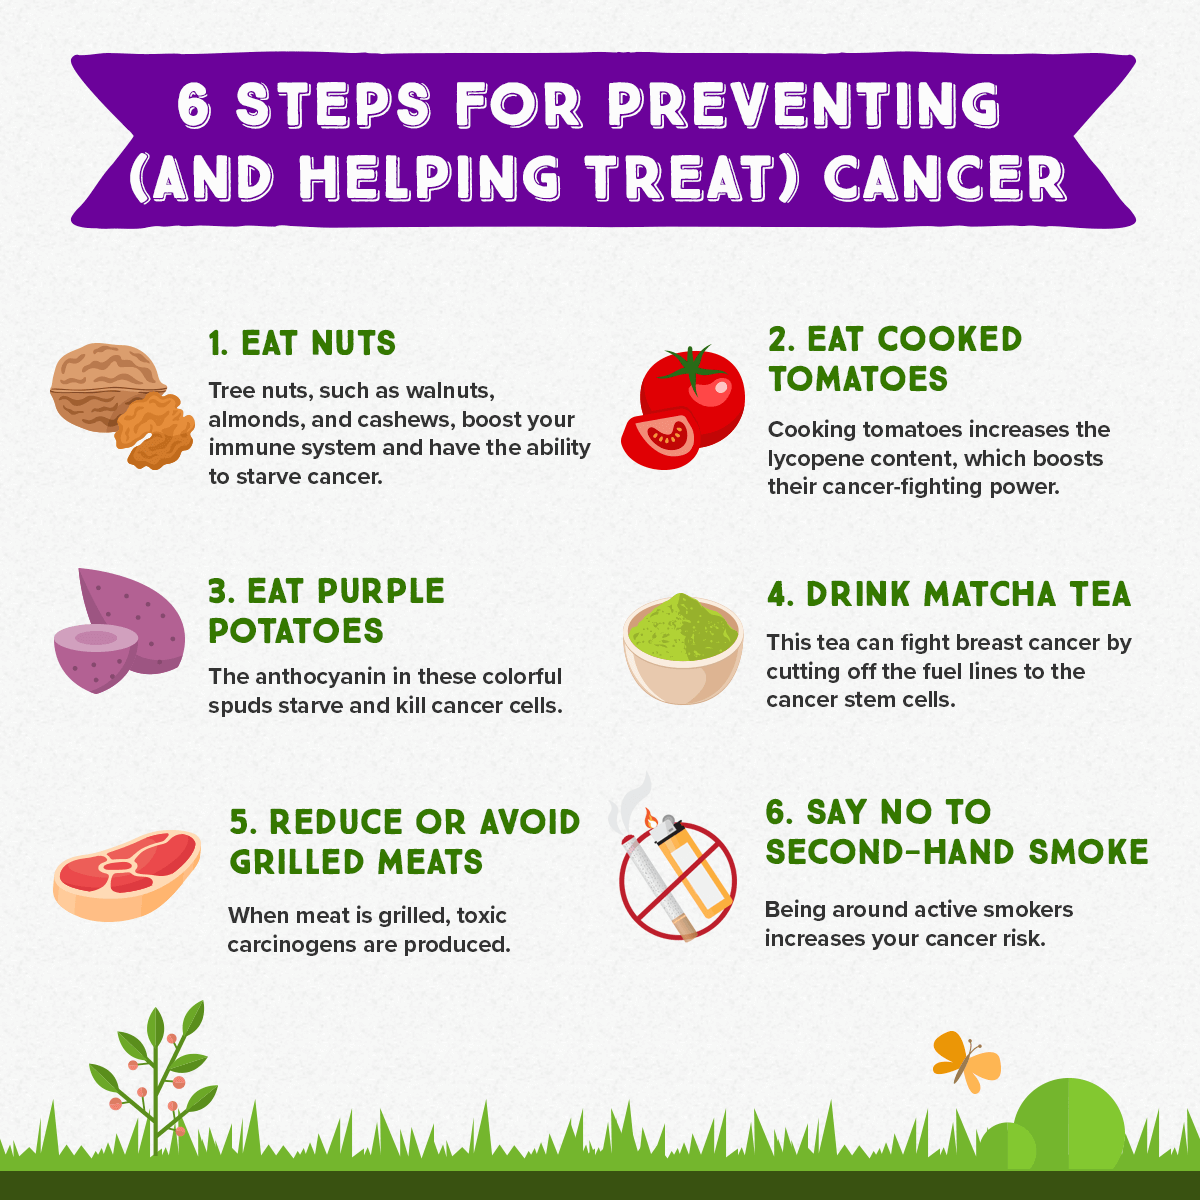 6 Steps for Preventing and Helping Treat Cancer